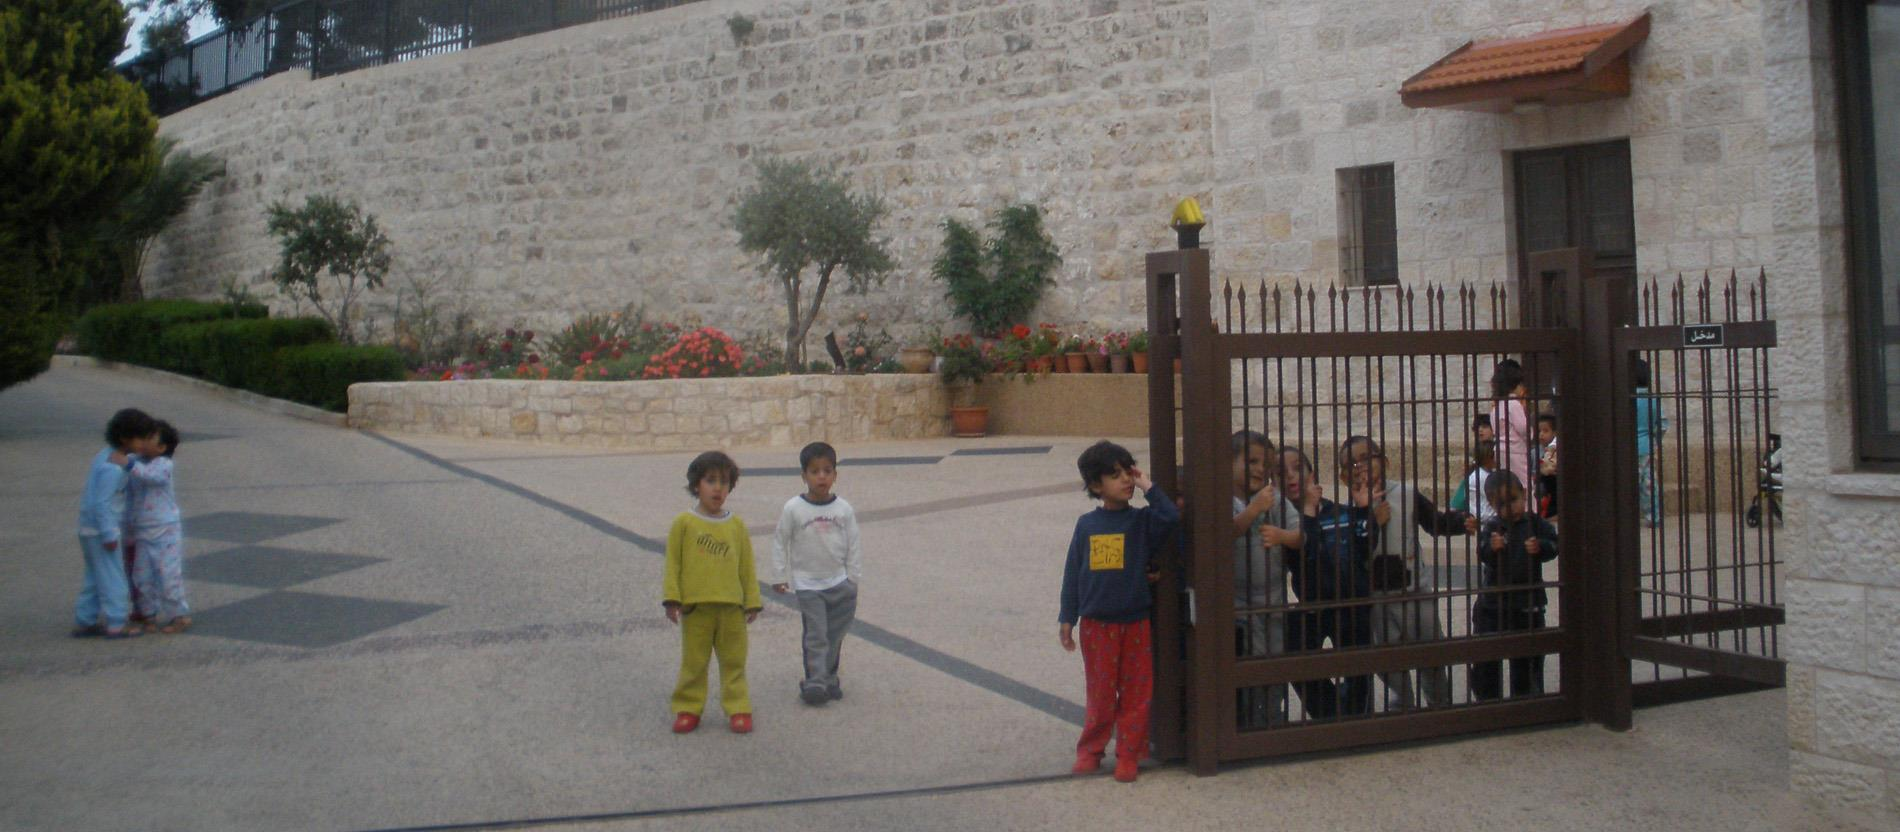 "Kinder am Eingangstor der ""Creche"" in Bethlehem."